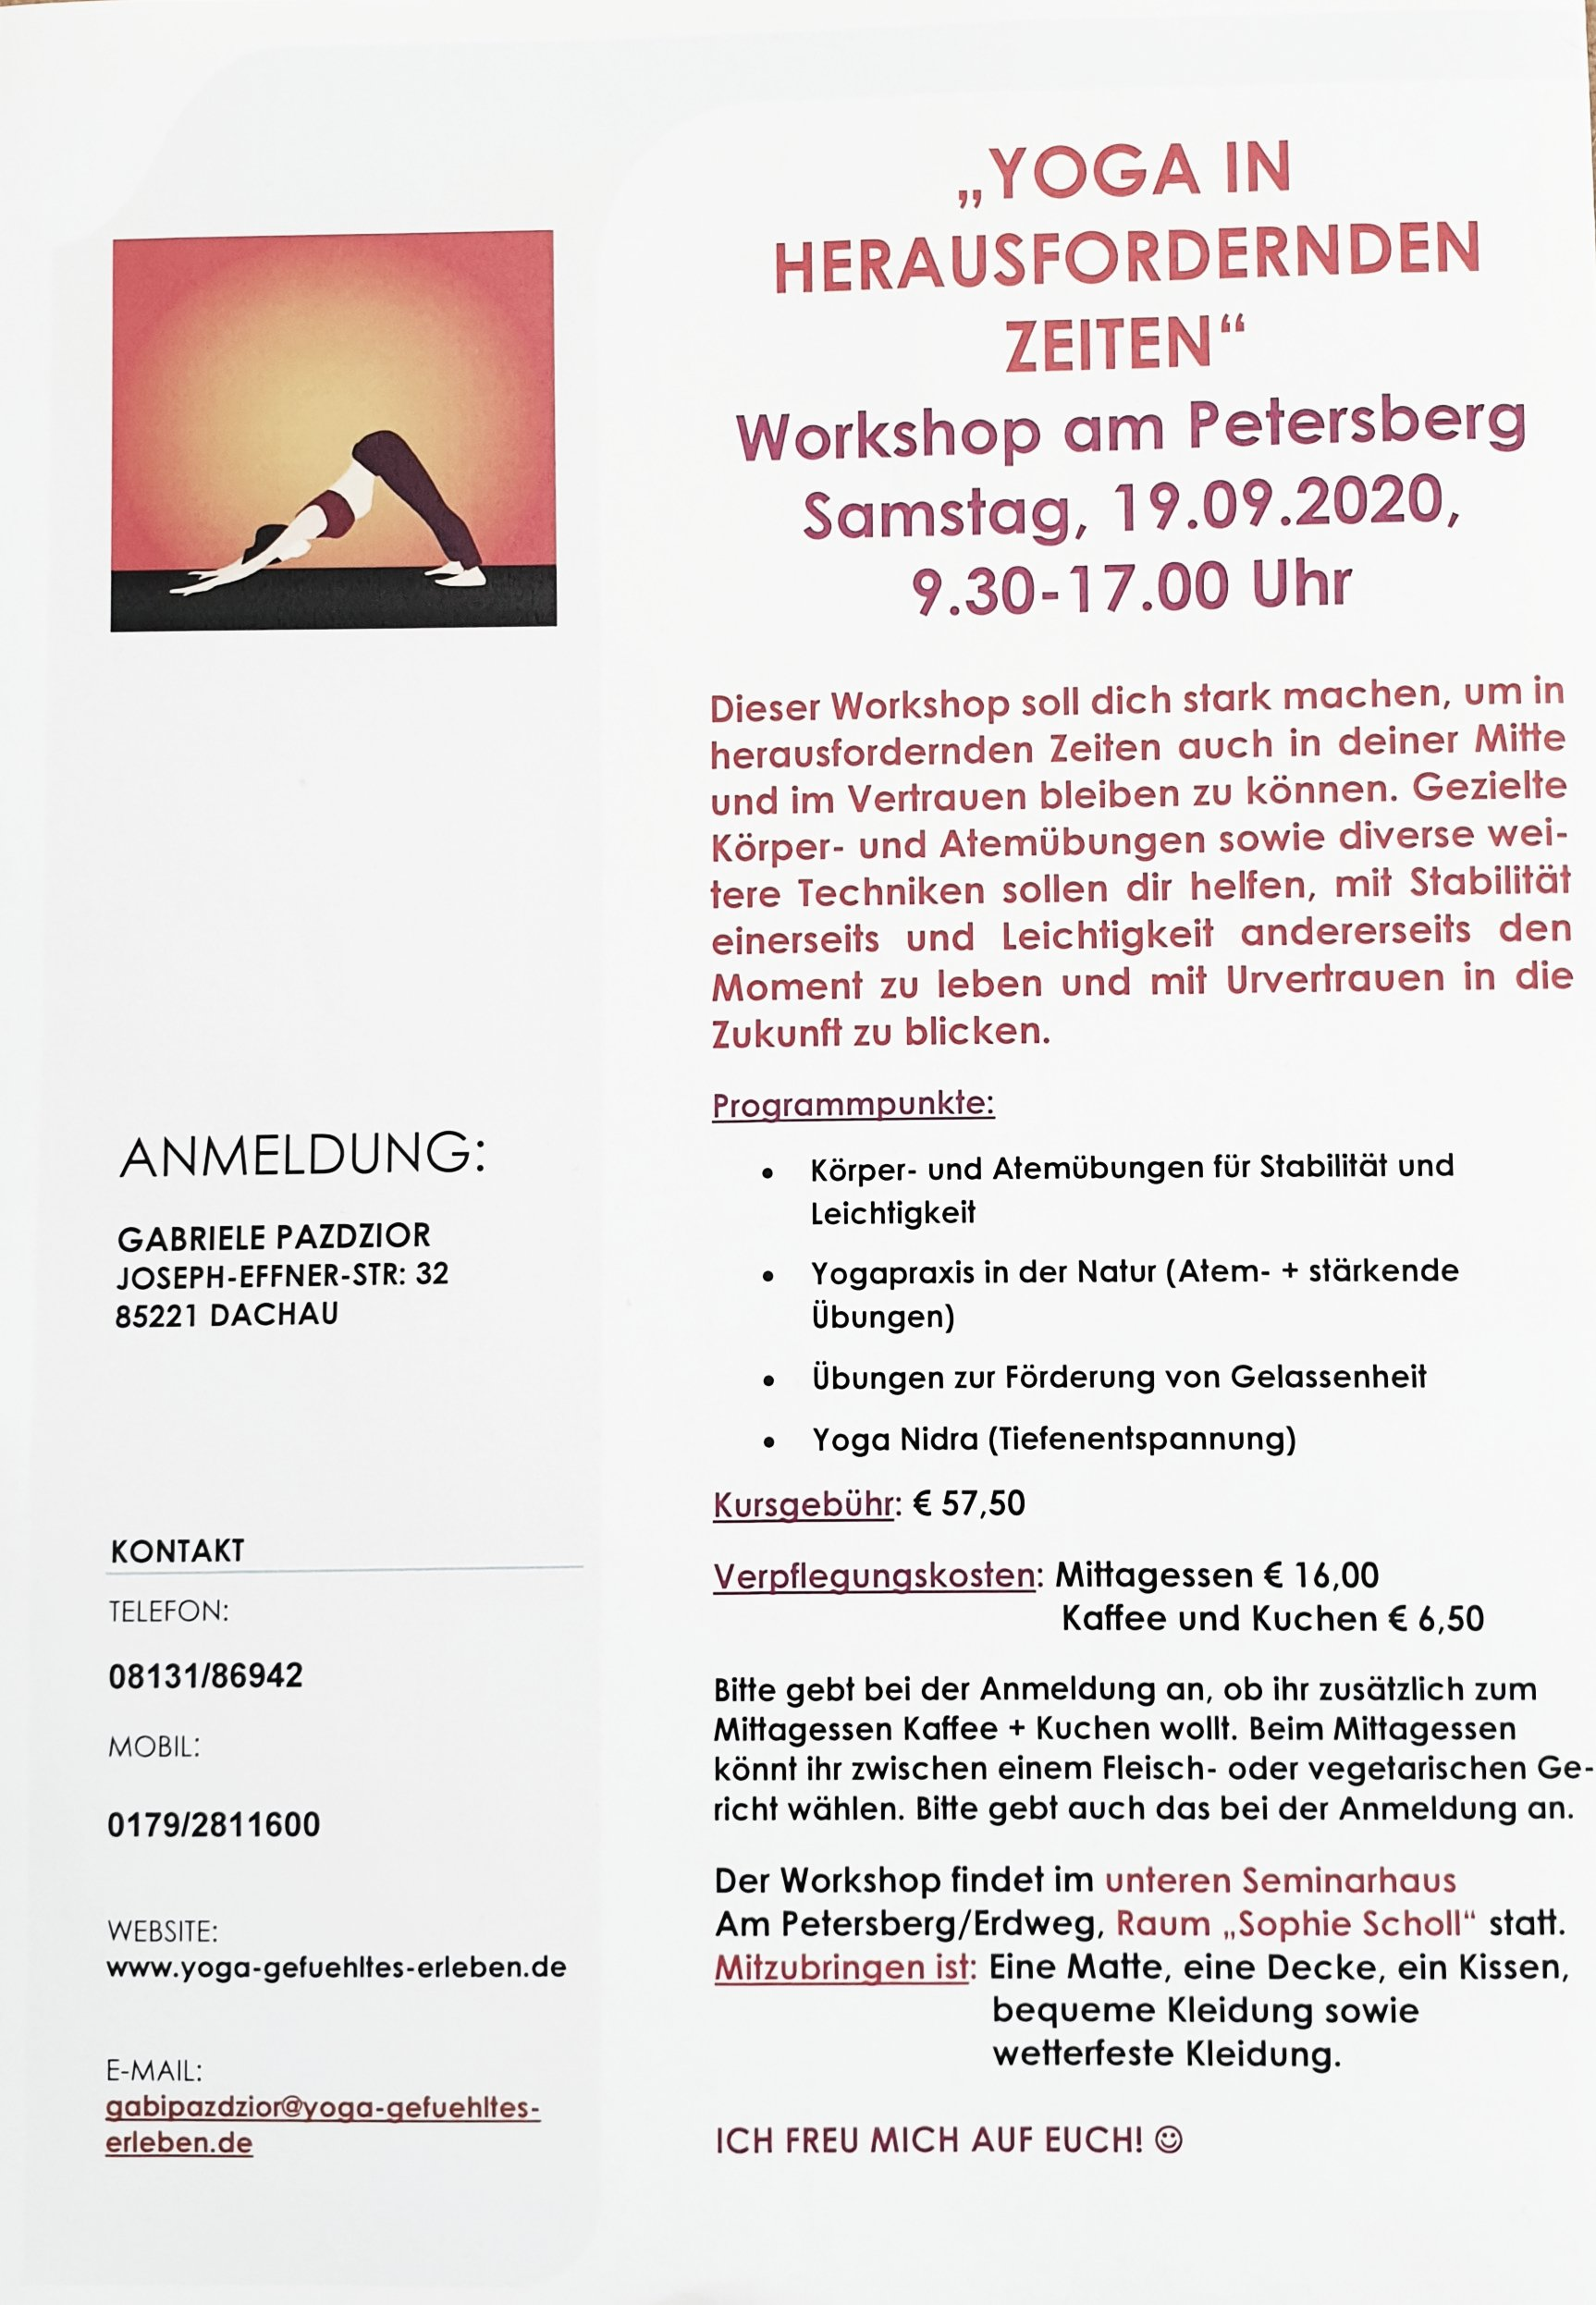 Workshop Yoga in herausfordernden Zeiten